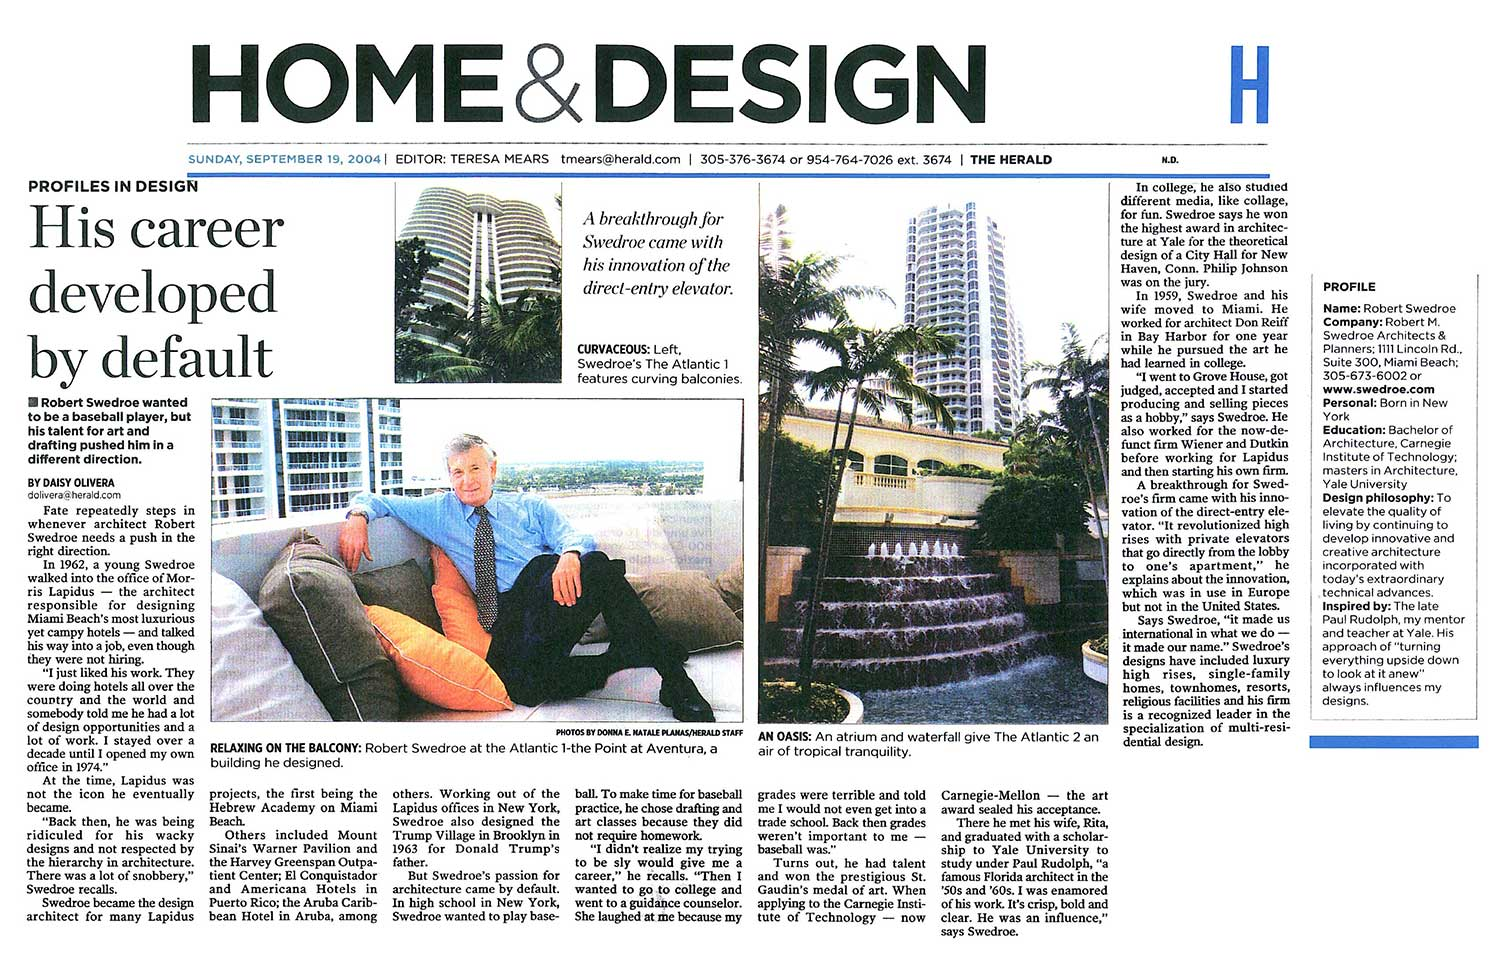 news_The_Herald._Profiles_in_Design_9.19.04